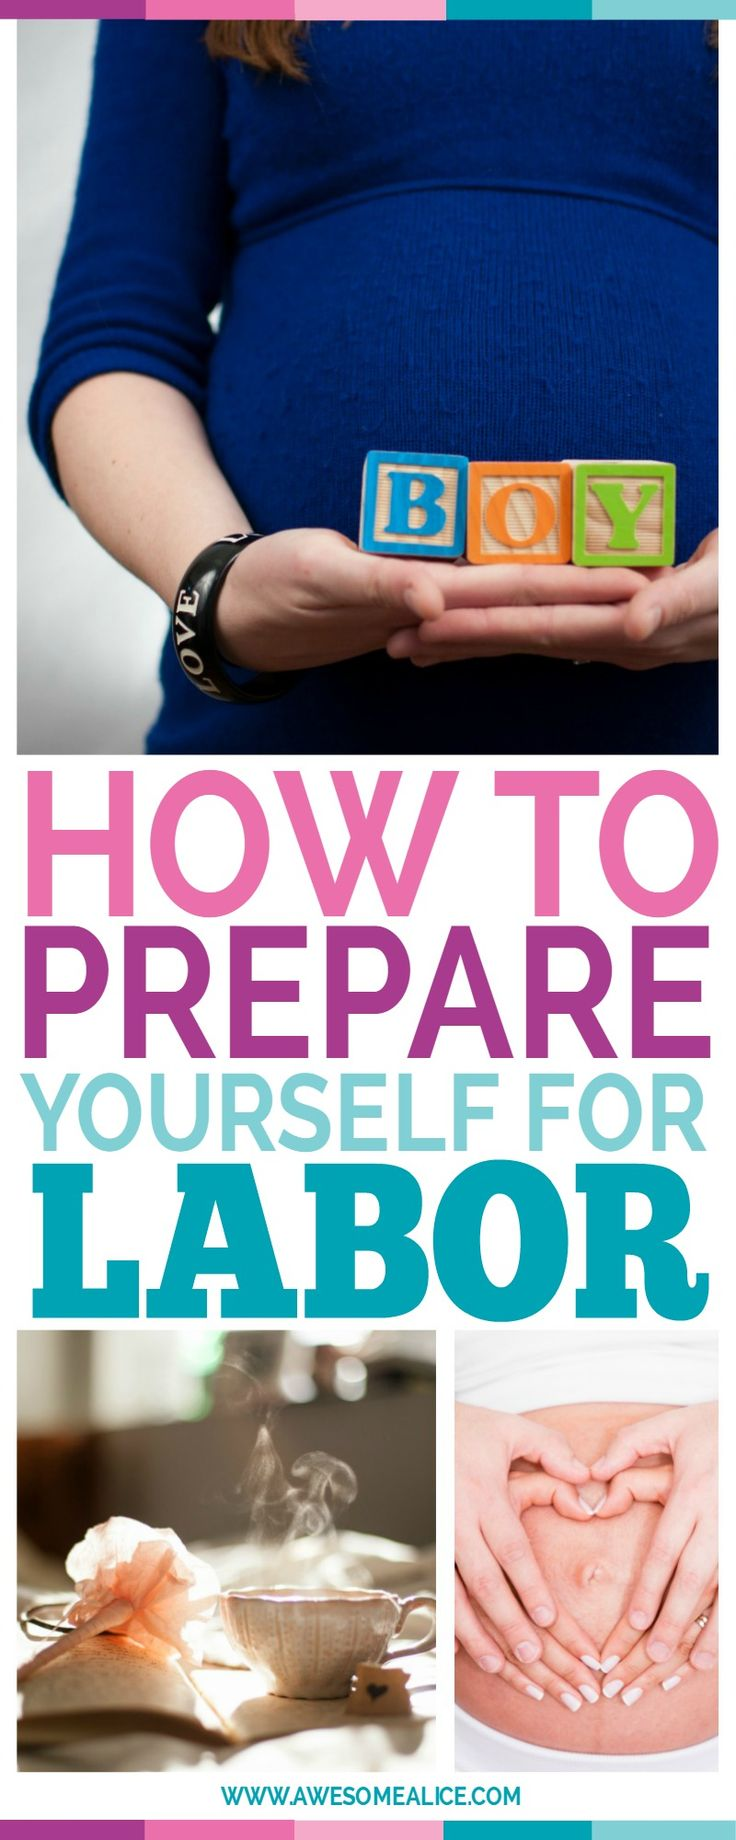 Soon your baby will be here. It's just one itsy bitsy thing that you have to do first: Give birth. Here are 15 tips to prepare yourself for labor: